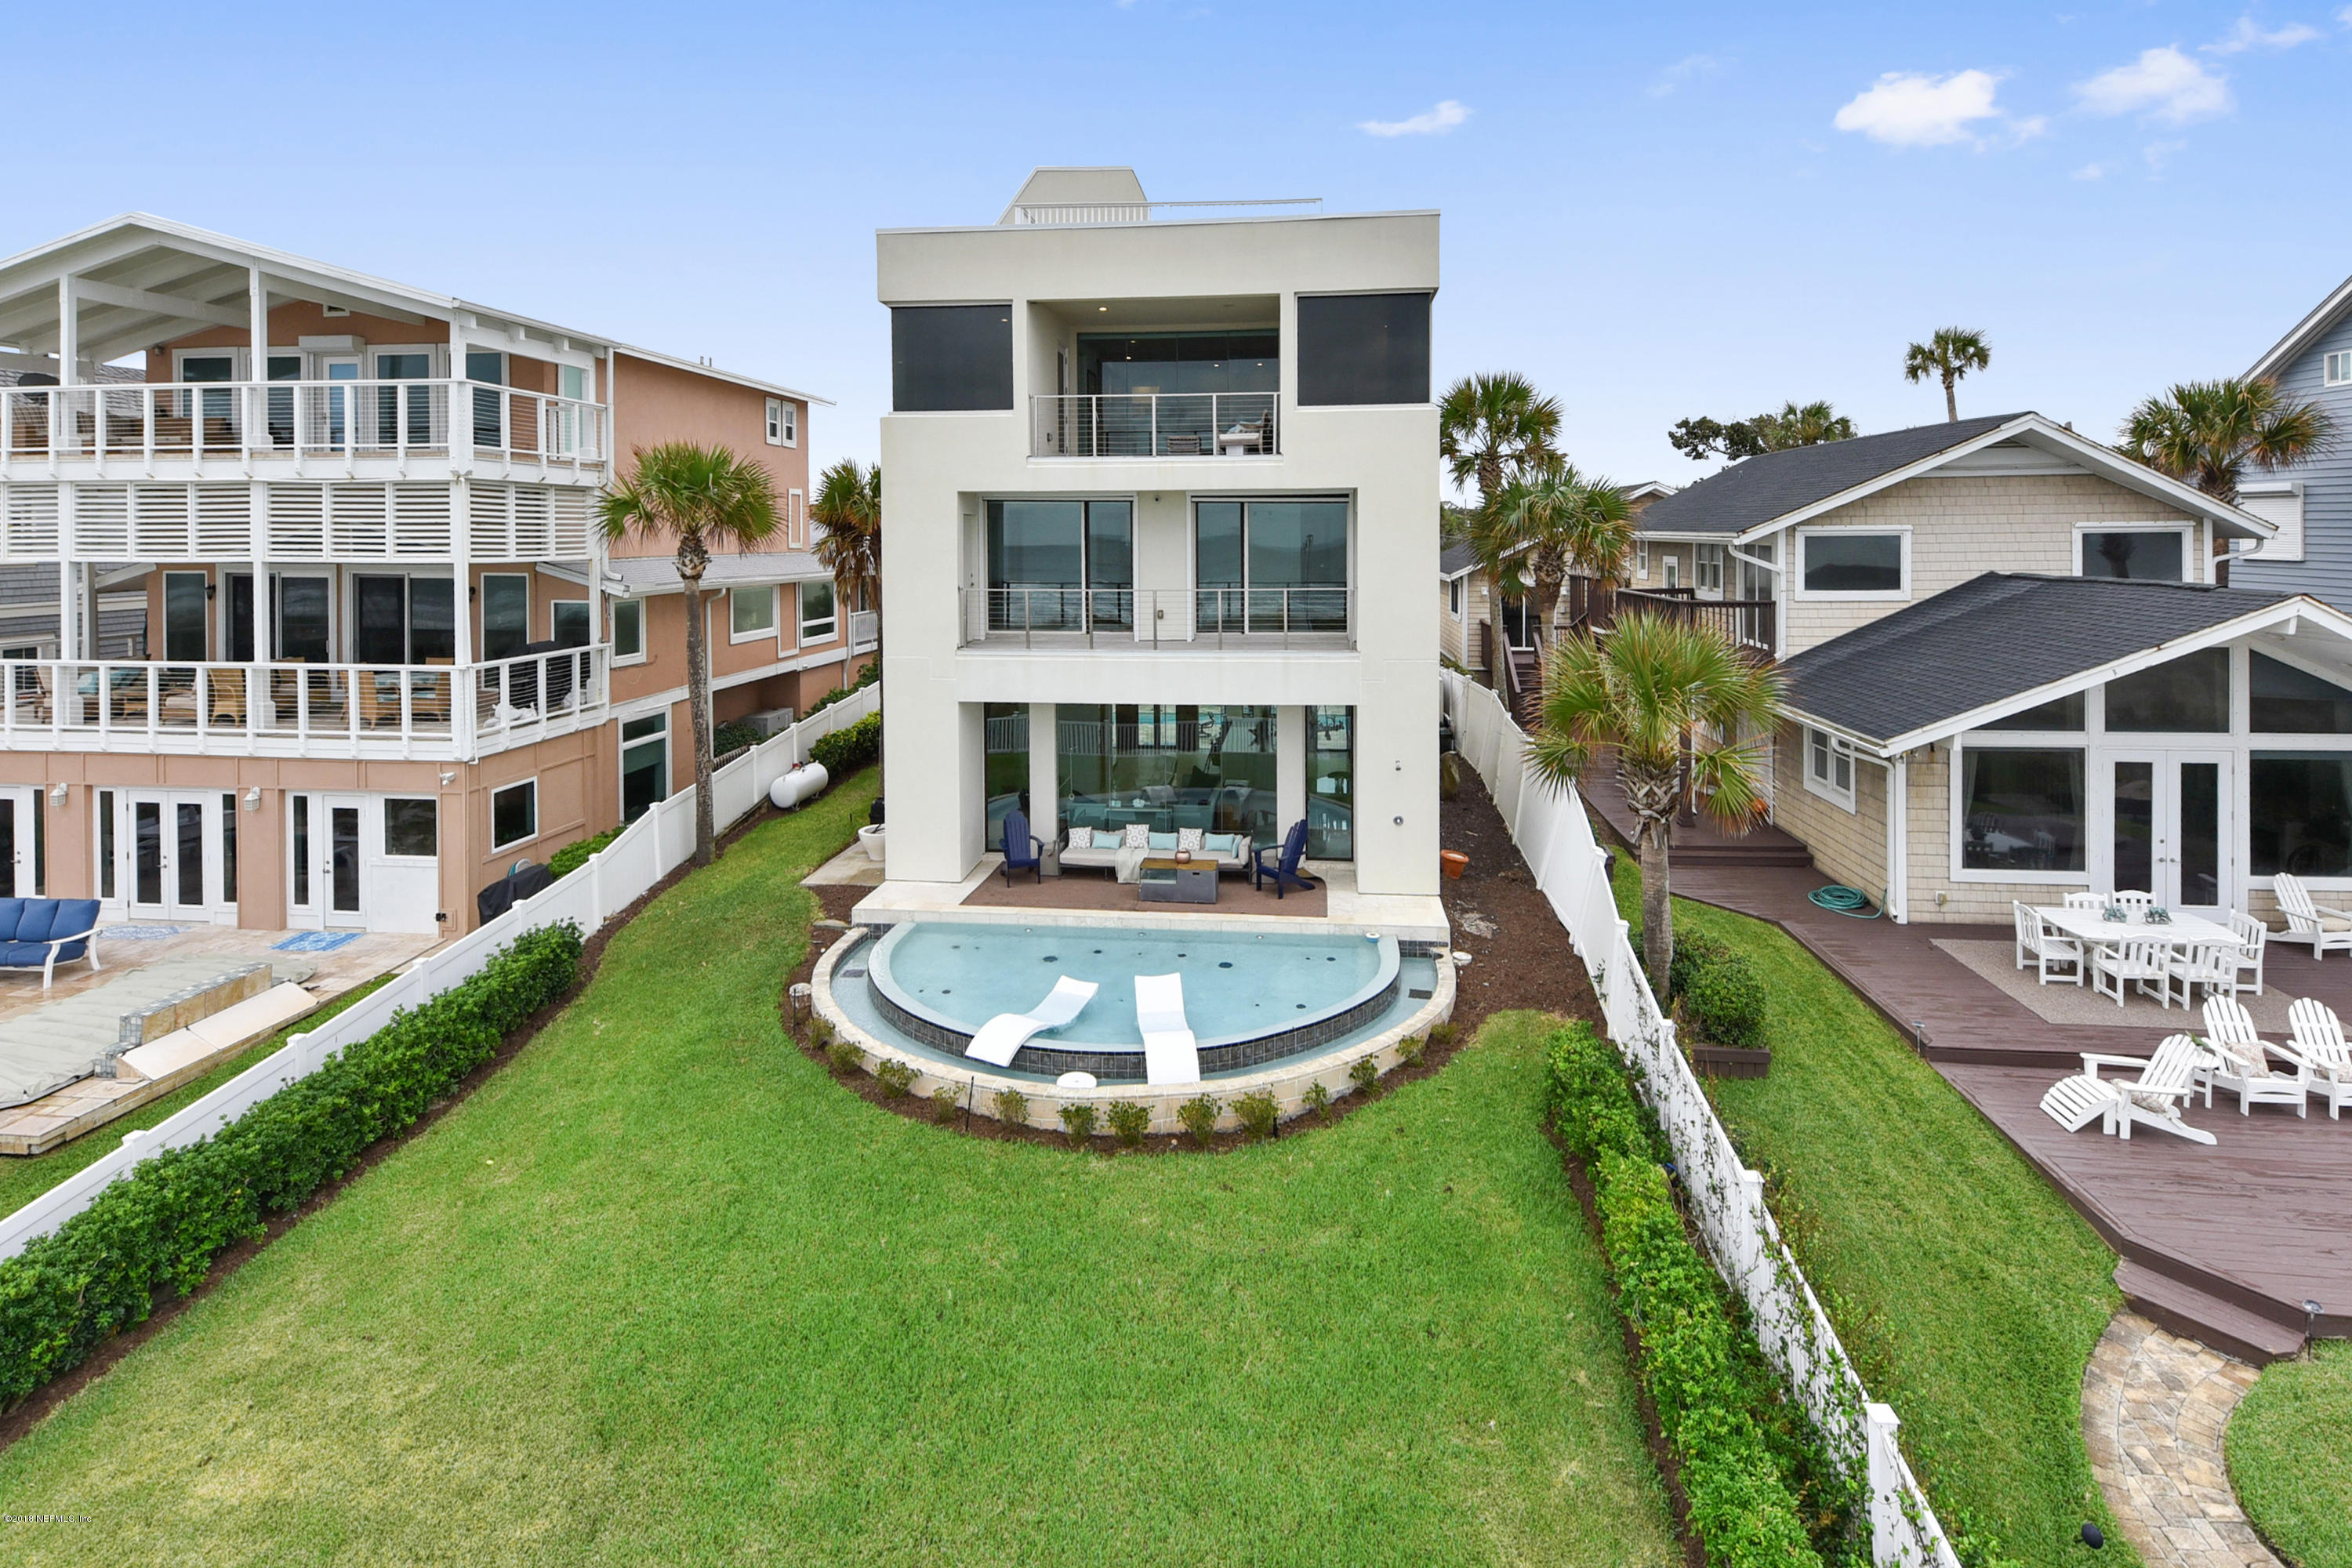 1777 BEACH, ATLANTIC BEACH, FLORIDA 32233, 4 Bedrooms Bedrooms, ,5 BathroomsBathrooms,Residential - single family,For sale,BEACH,964464